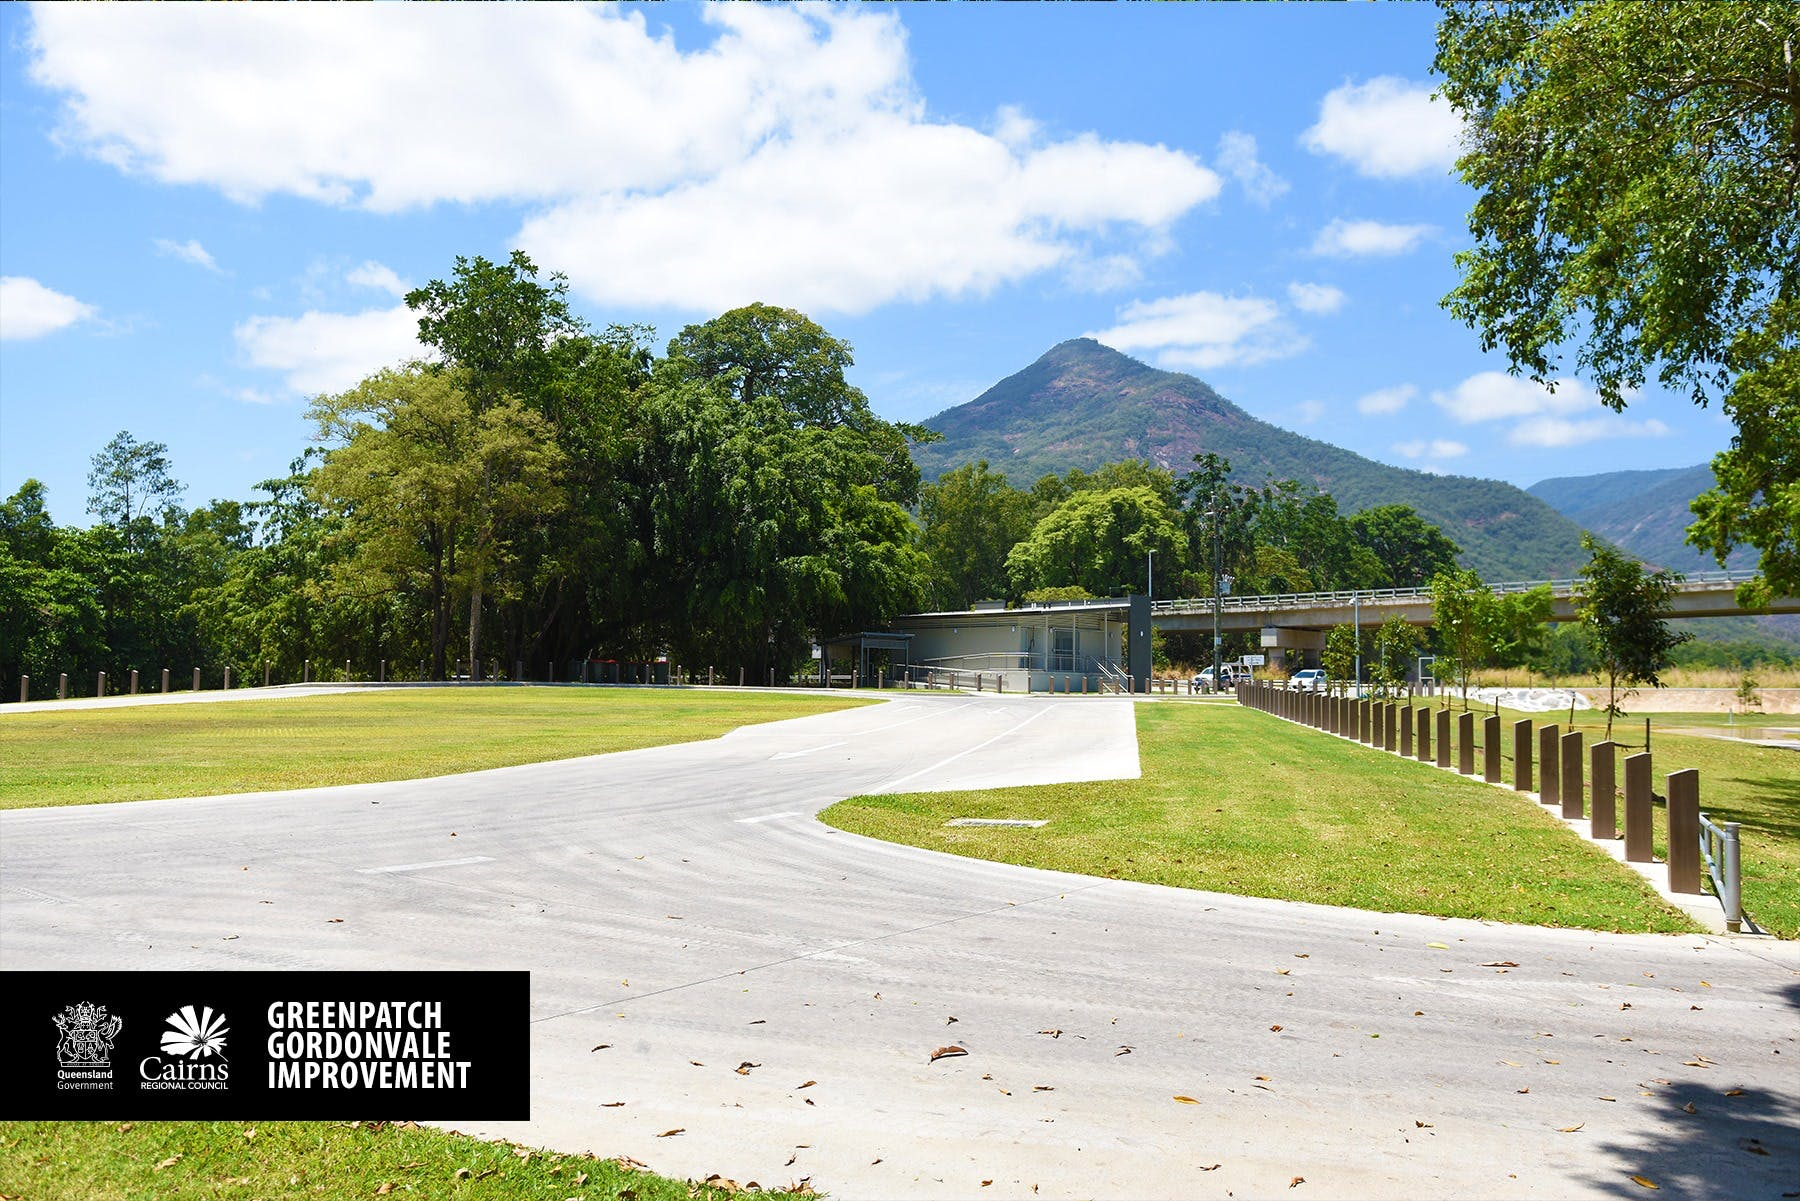 Greenpatch Reserve - Image Courtesy Cairns Regional Council